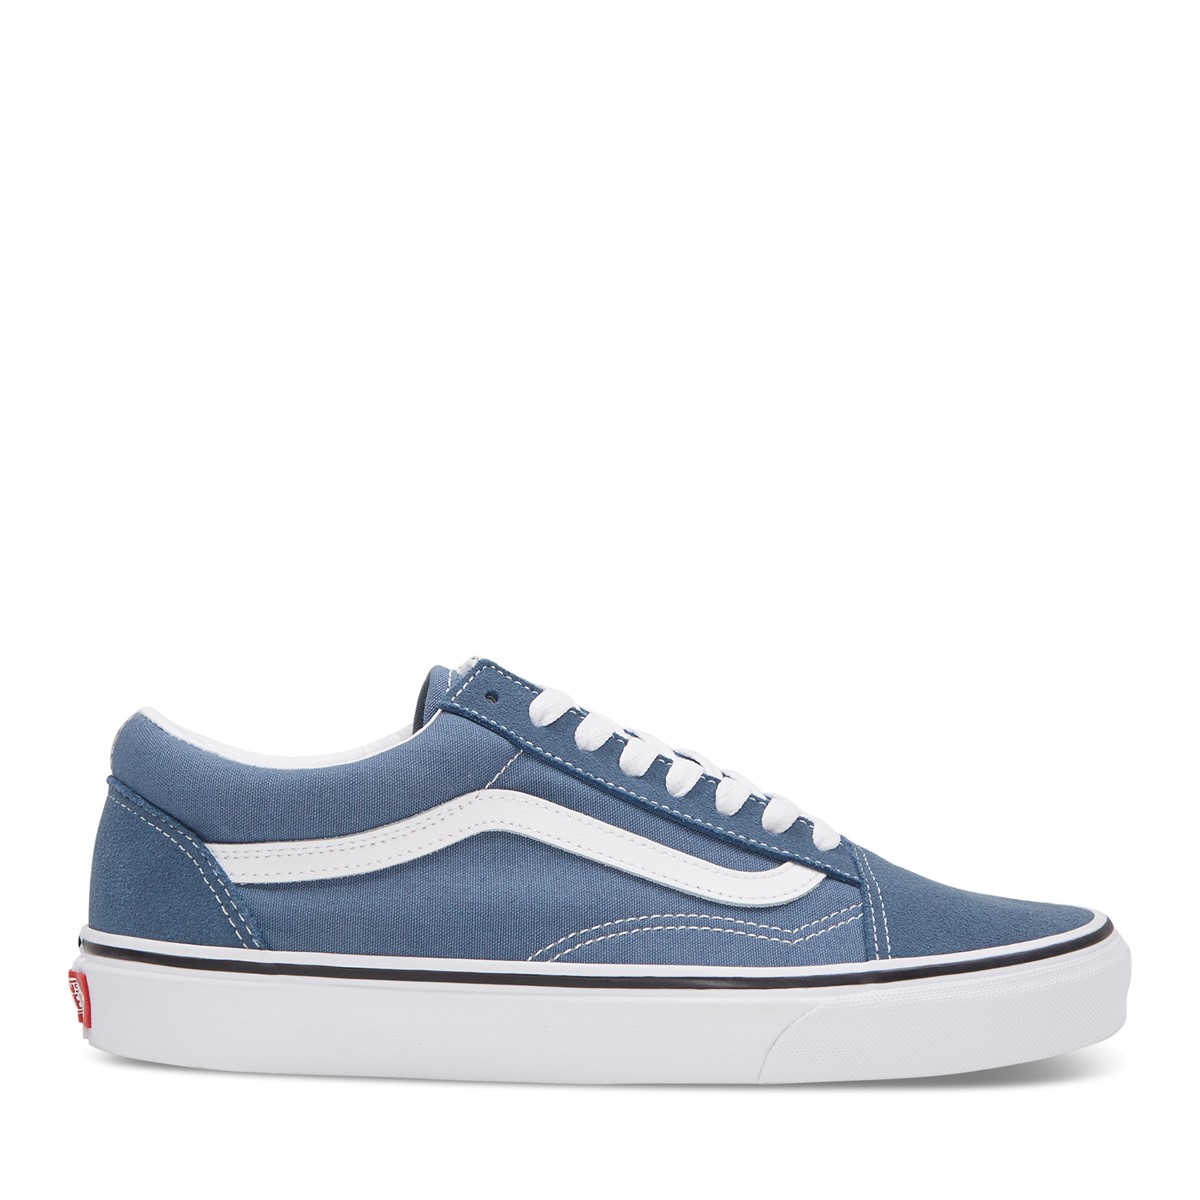 Baskets Old Skool bleues pour hommes